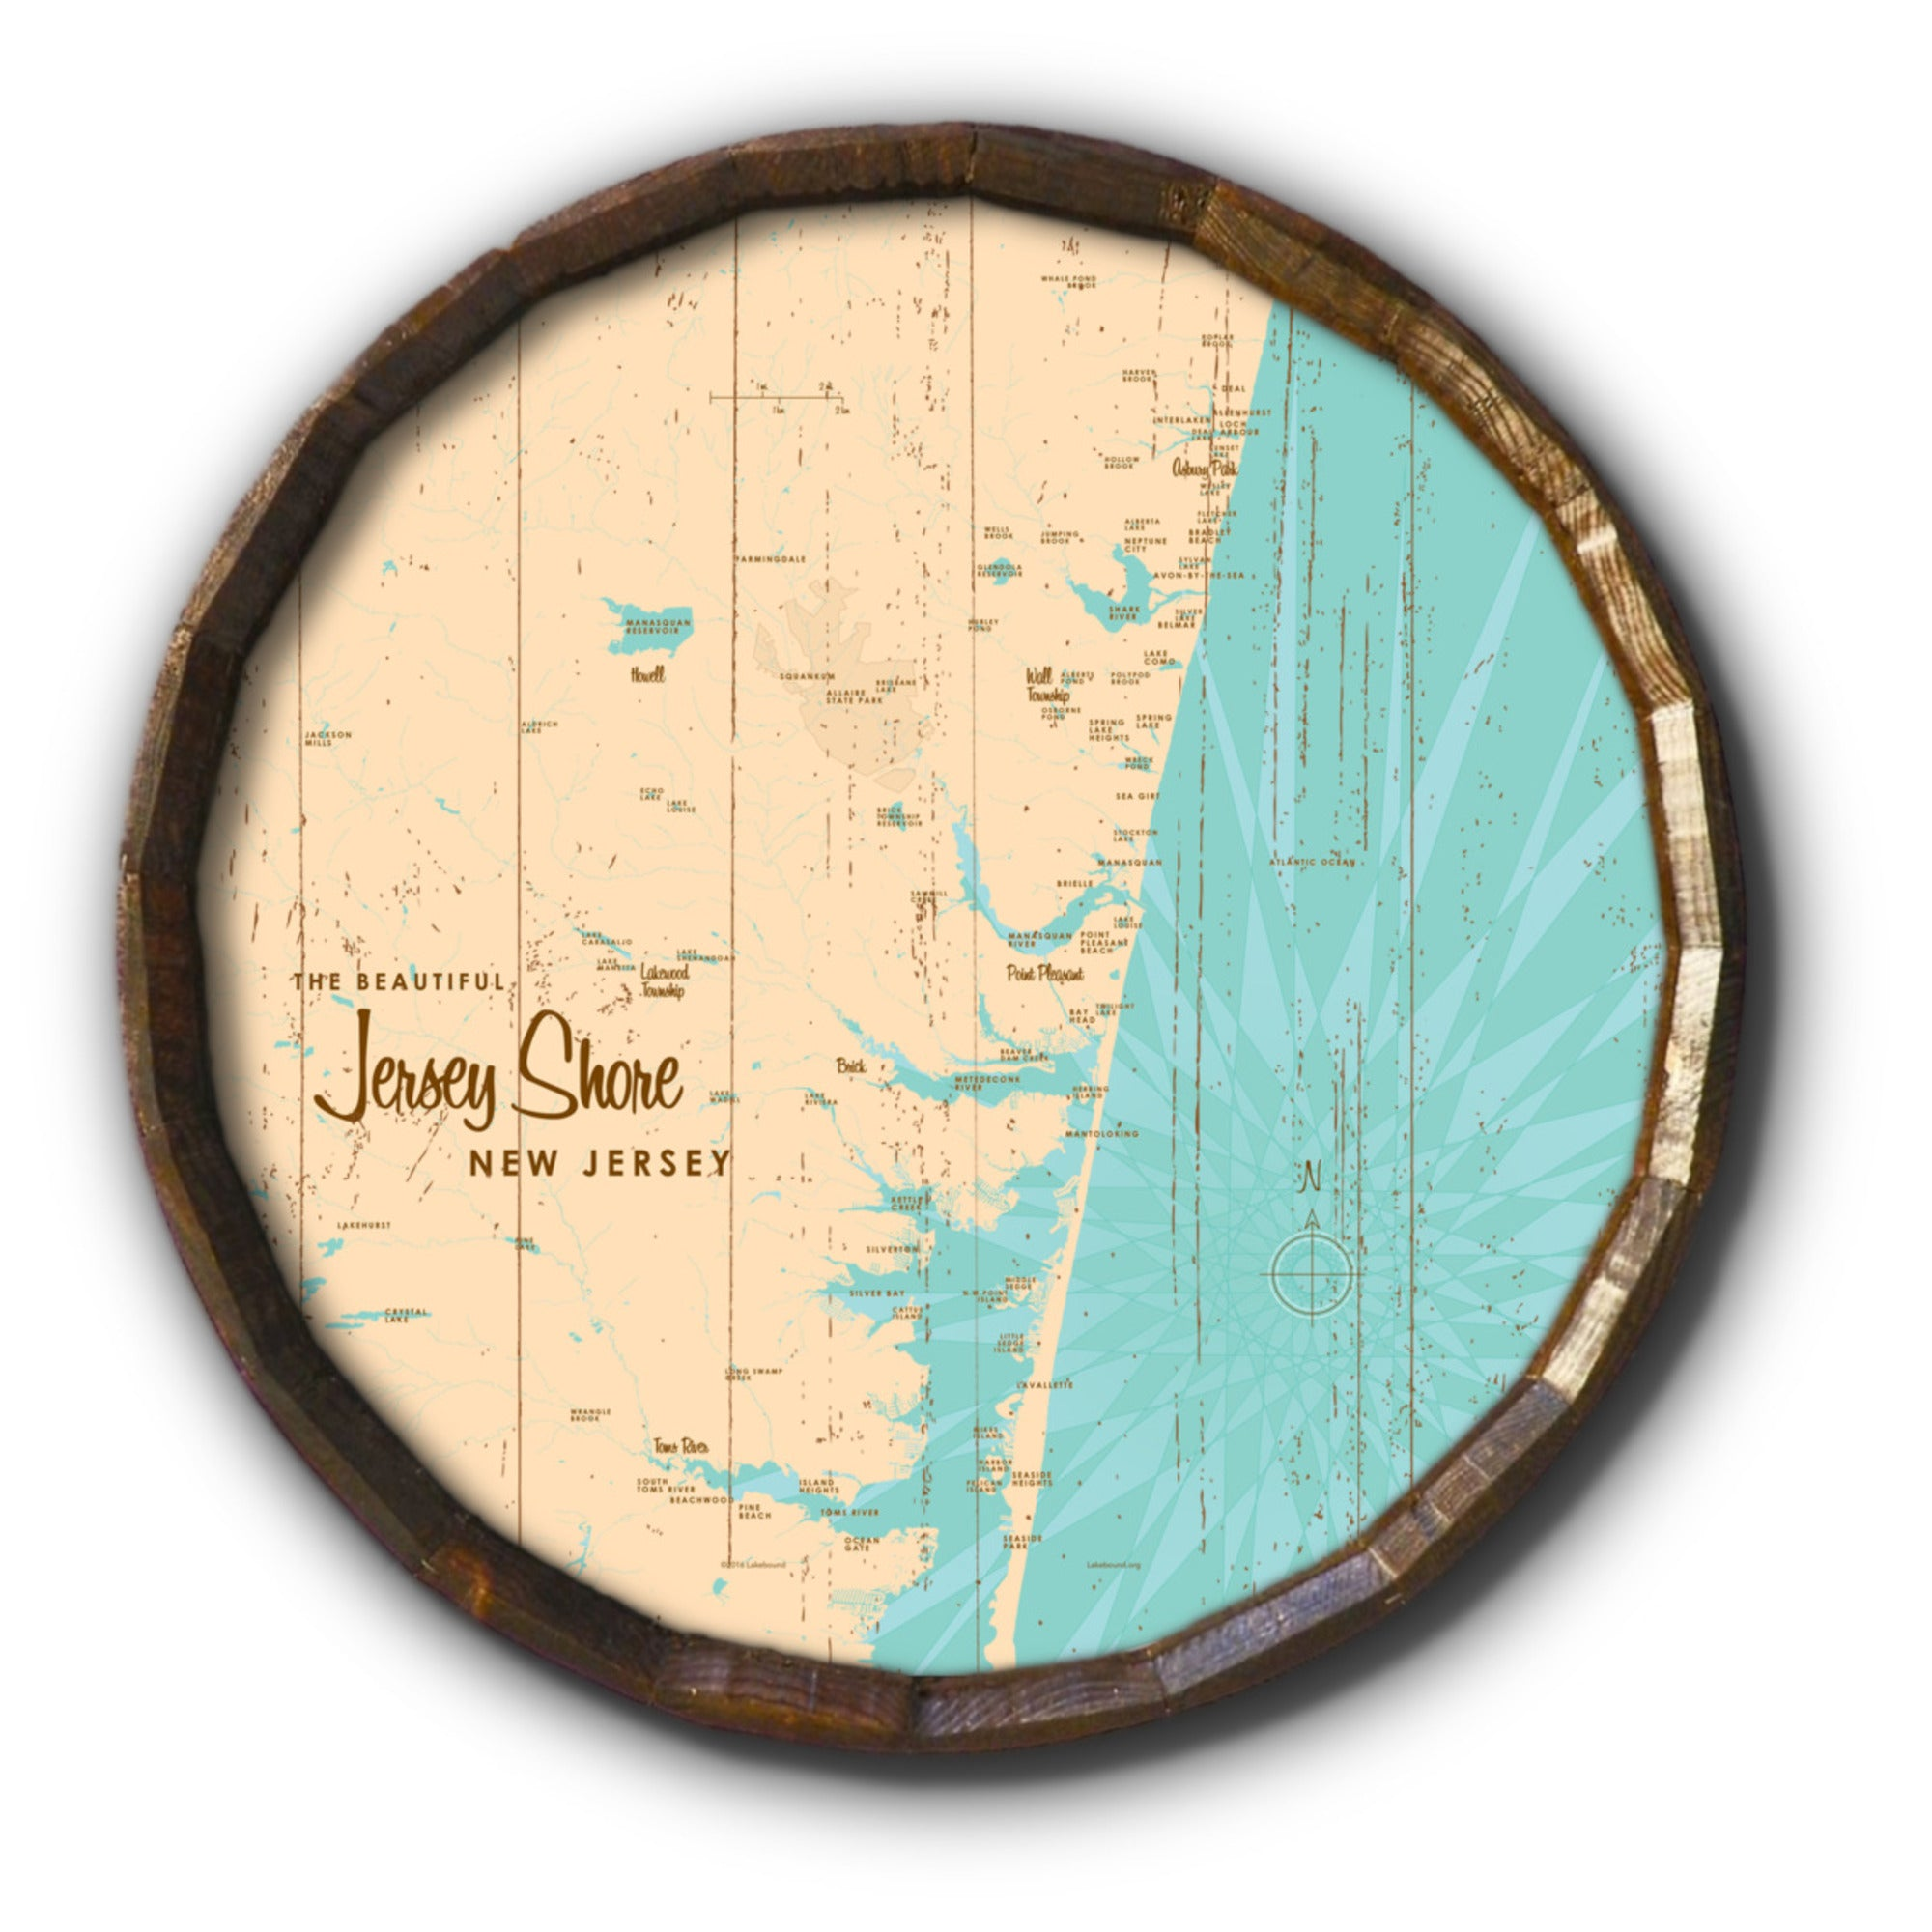 Jersey Shore New Jersey, Rustic Barrel End Map Art